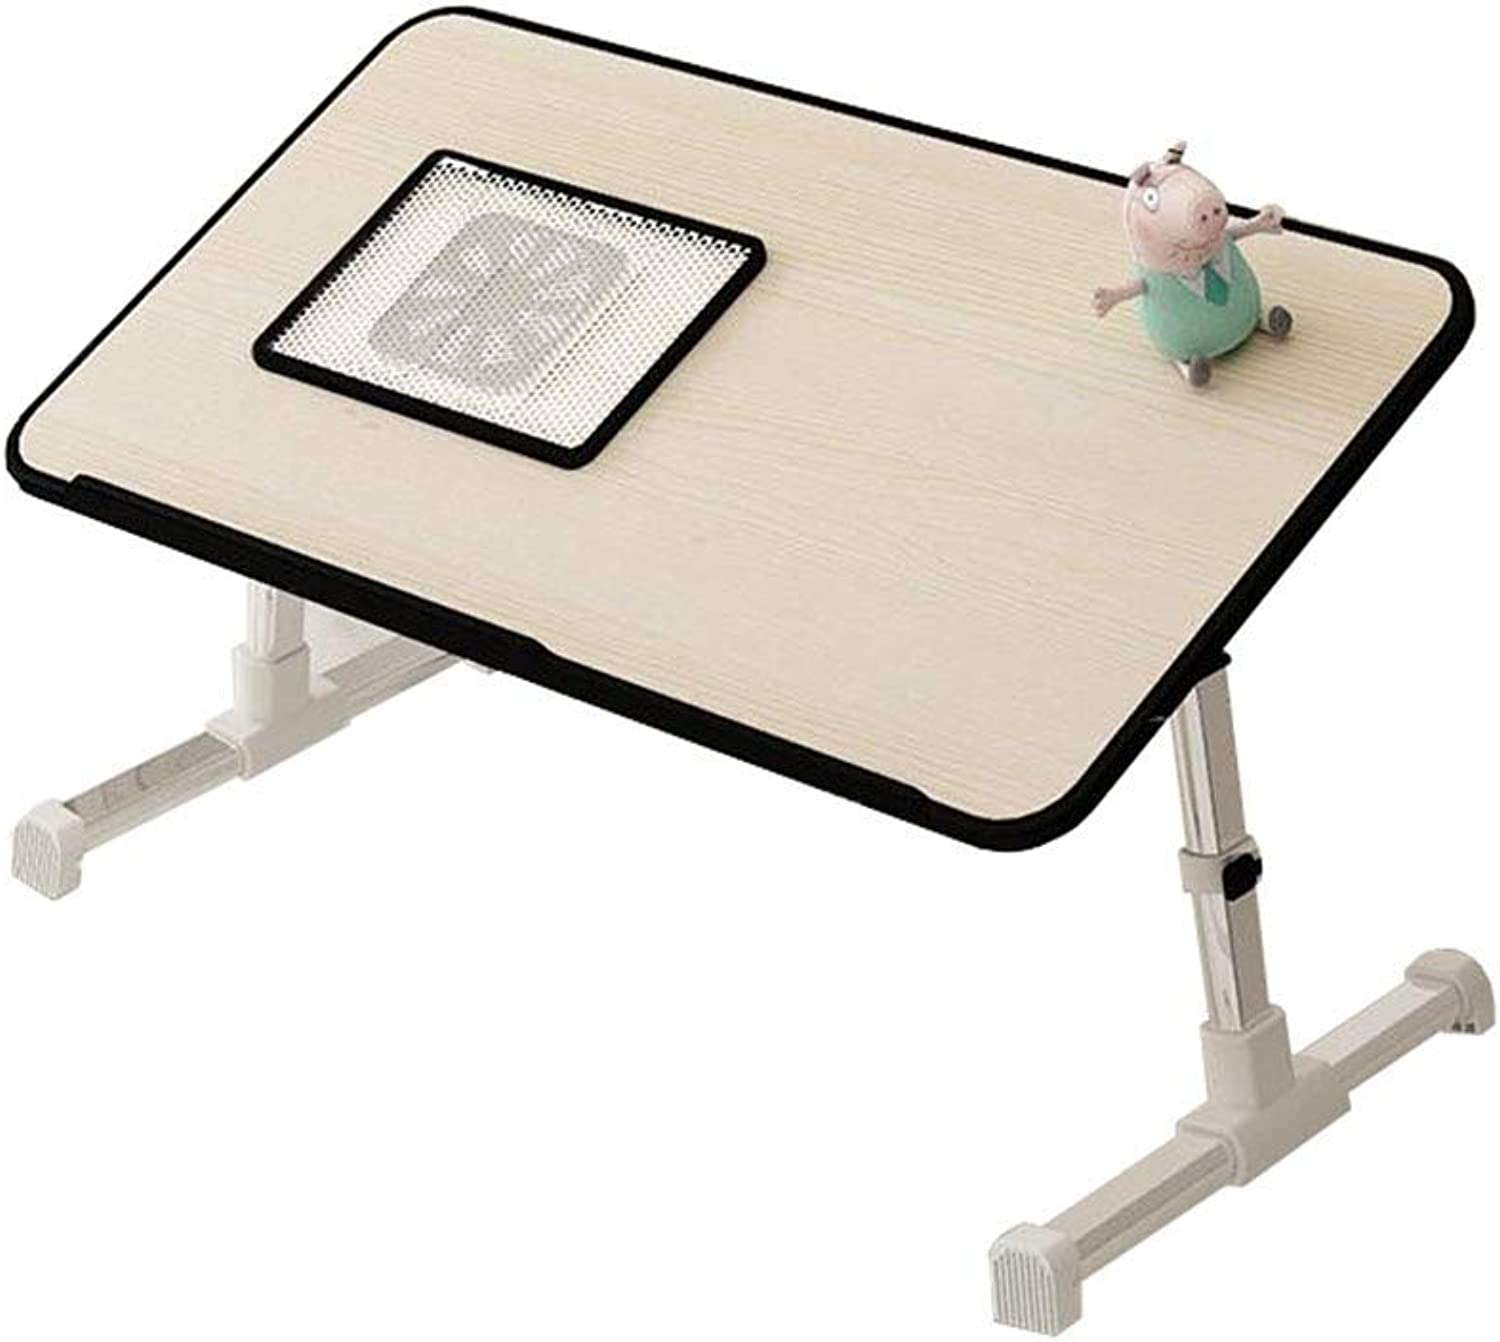 LiTing-Folding Table Bed Small Table Folding Table Computer To Do Table Simple Home Small Desk Small Table Bedroom Lazy Table College Dormitory Dormitory Multi-function Notebook Study Table Simple Min